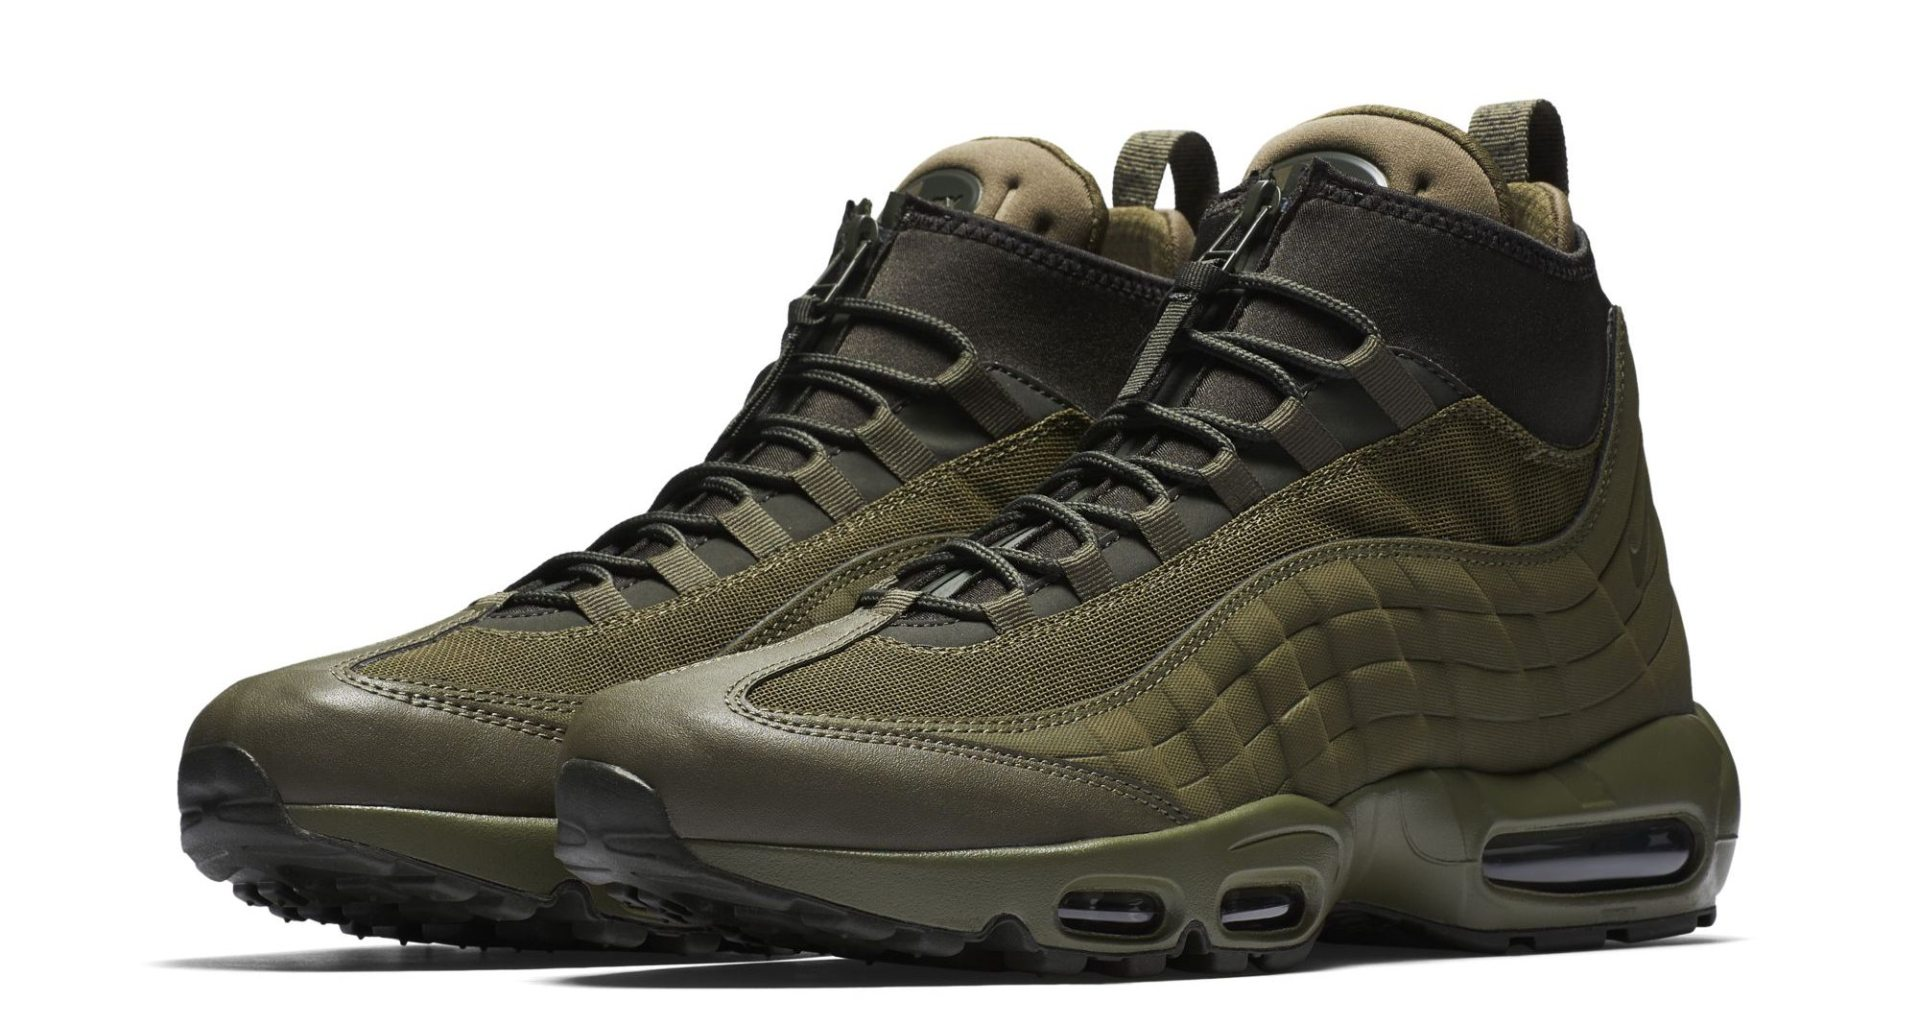 official photos 407cc a71de More Nike Air Max 95 Sneakerboots are Releasing. Sep 14, 2017